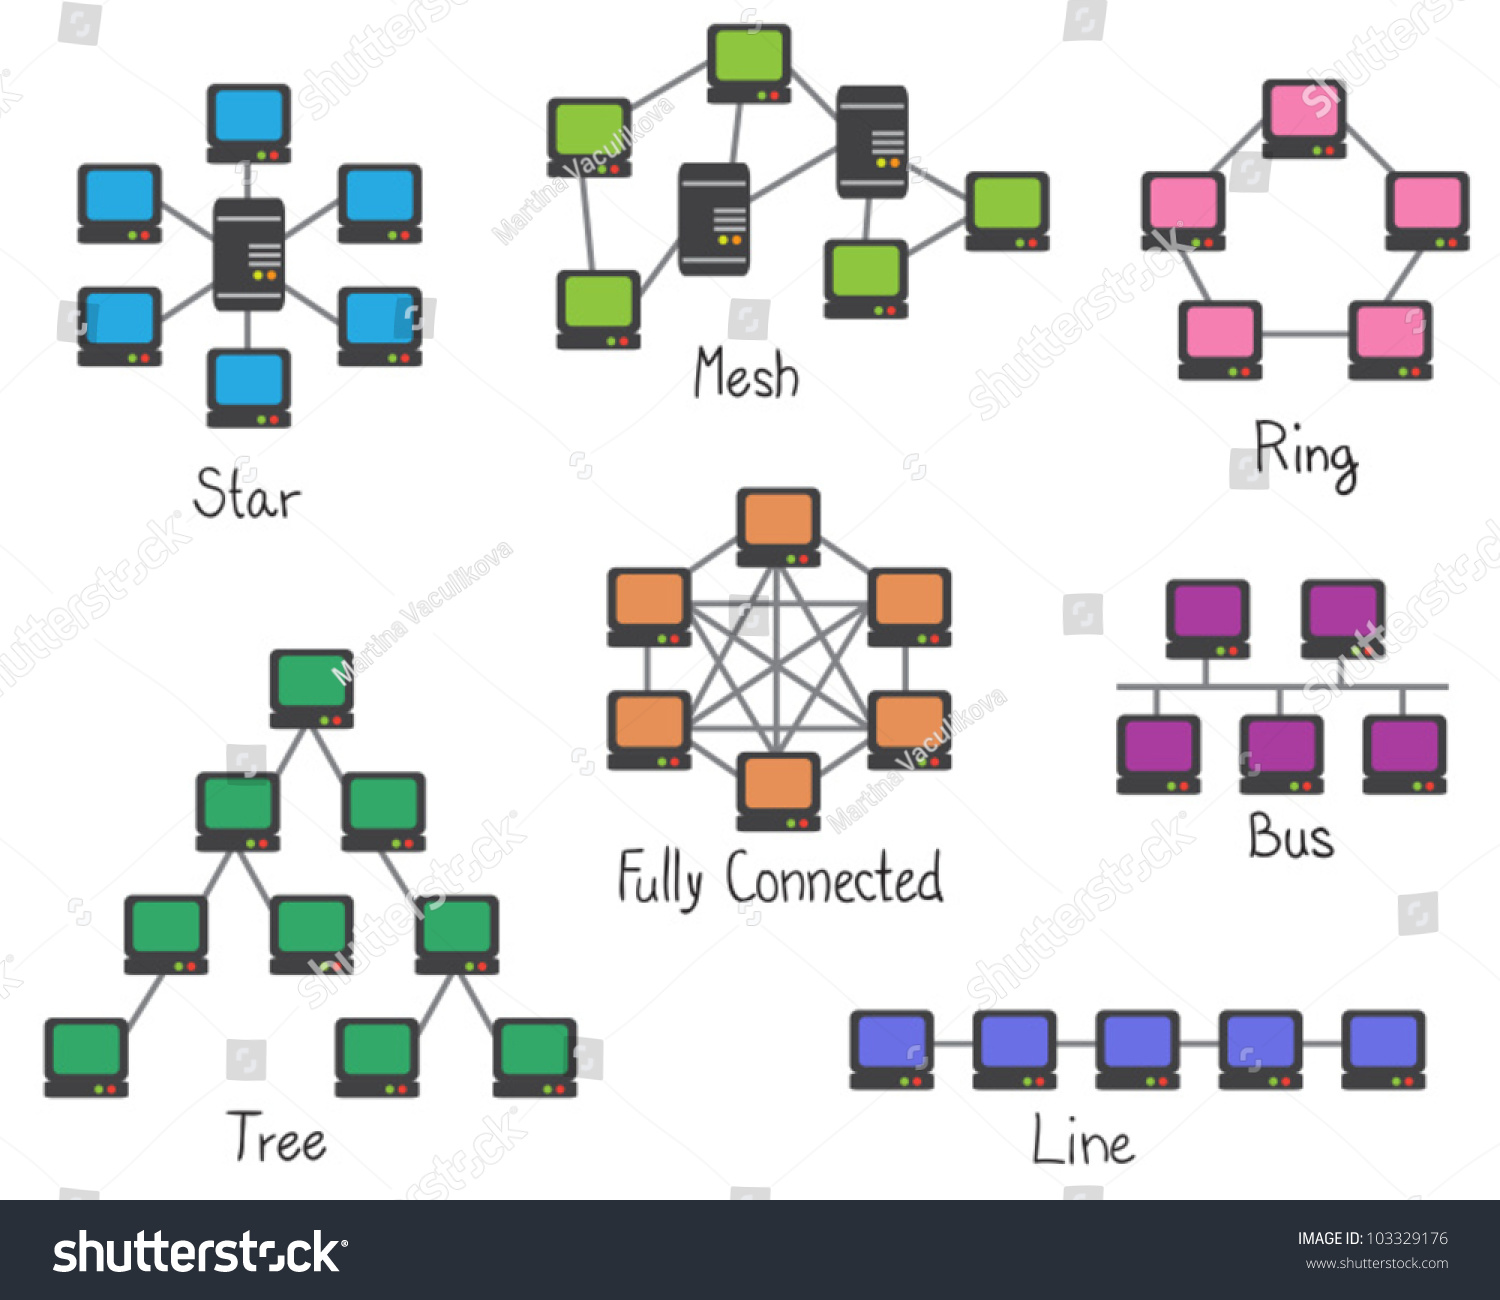 blog Fig likewise Bus Topology Diagram likewise Epon Eoc Solution New Ver X together with Tc Appdiagram besides Topologies Ring. on ring work topology diagram